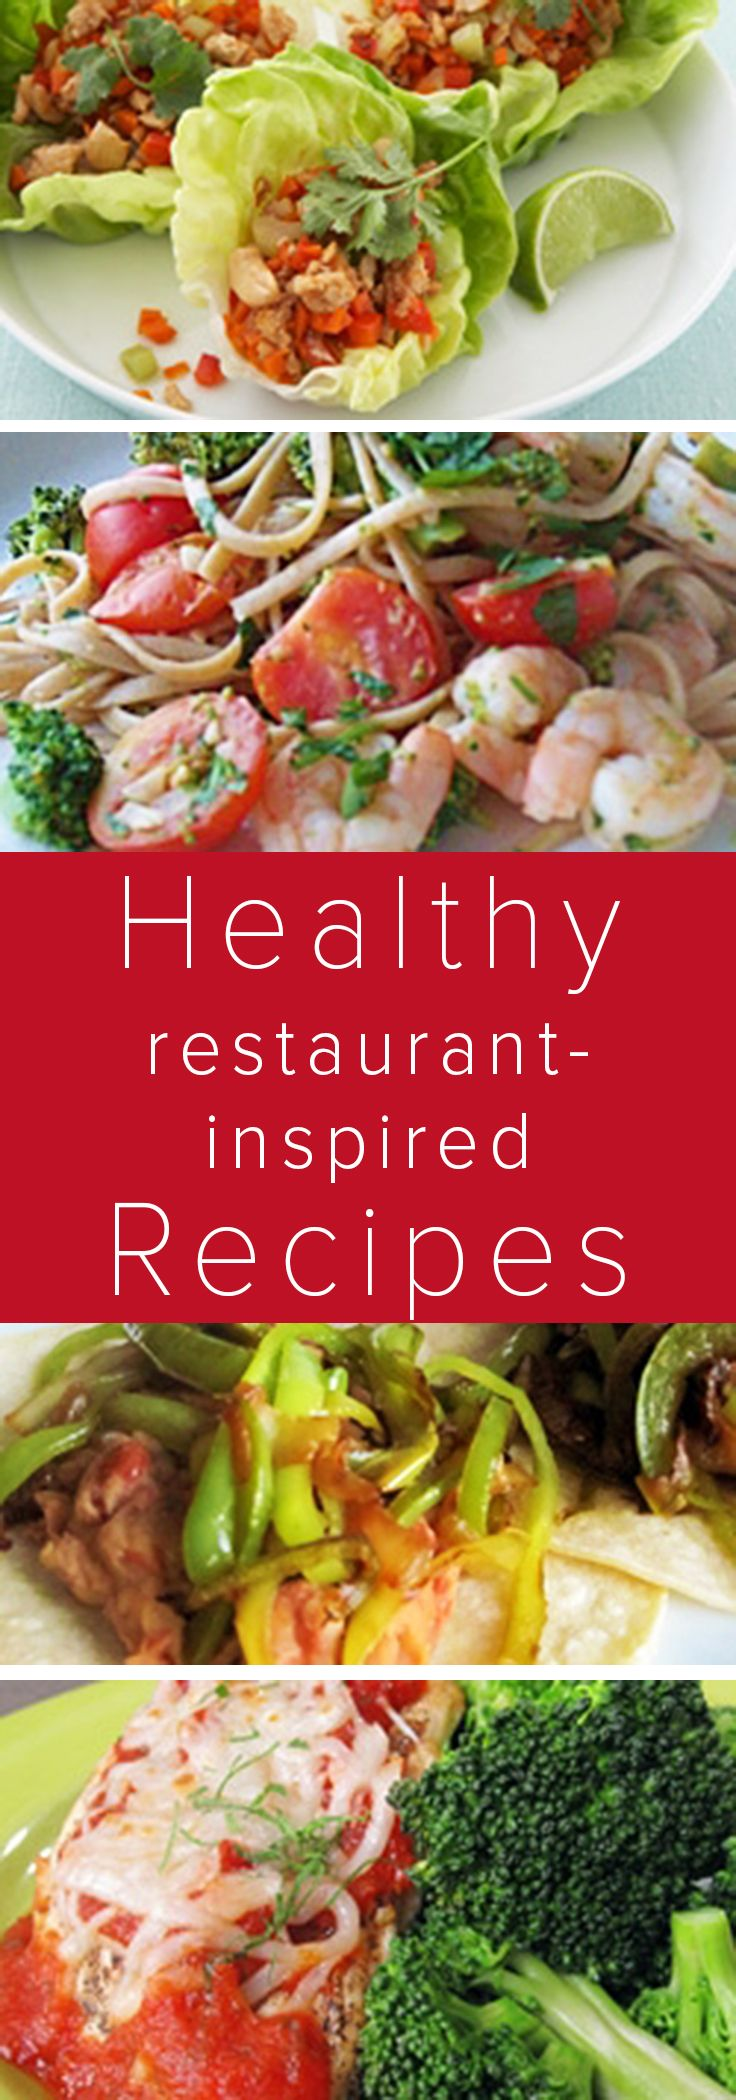 Best 25+ Joy bauer recipes ideas only on Pinterest | Healthy salad ...